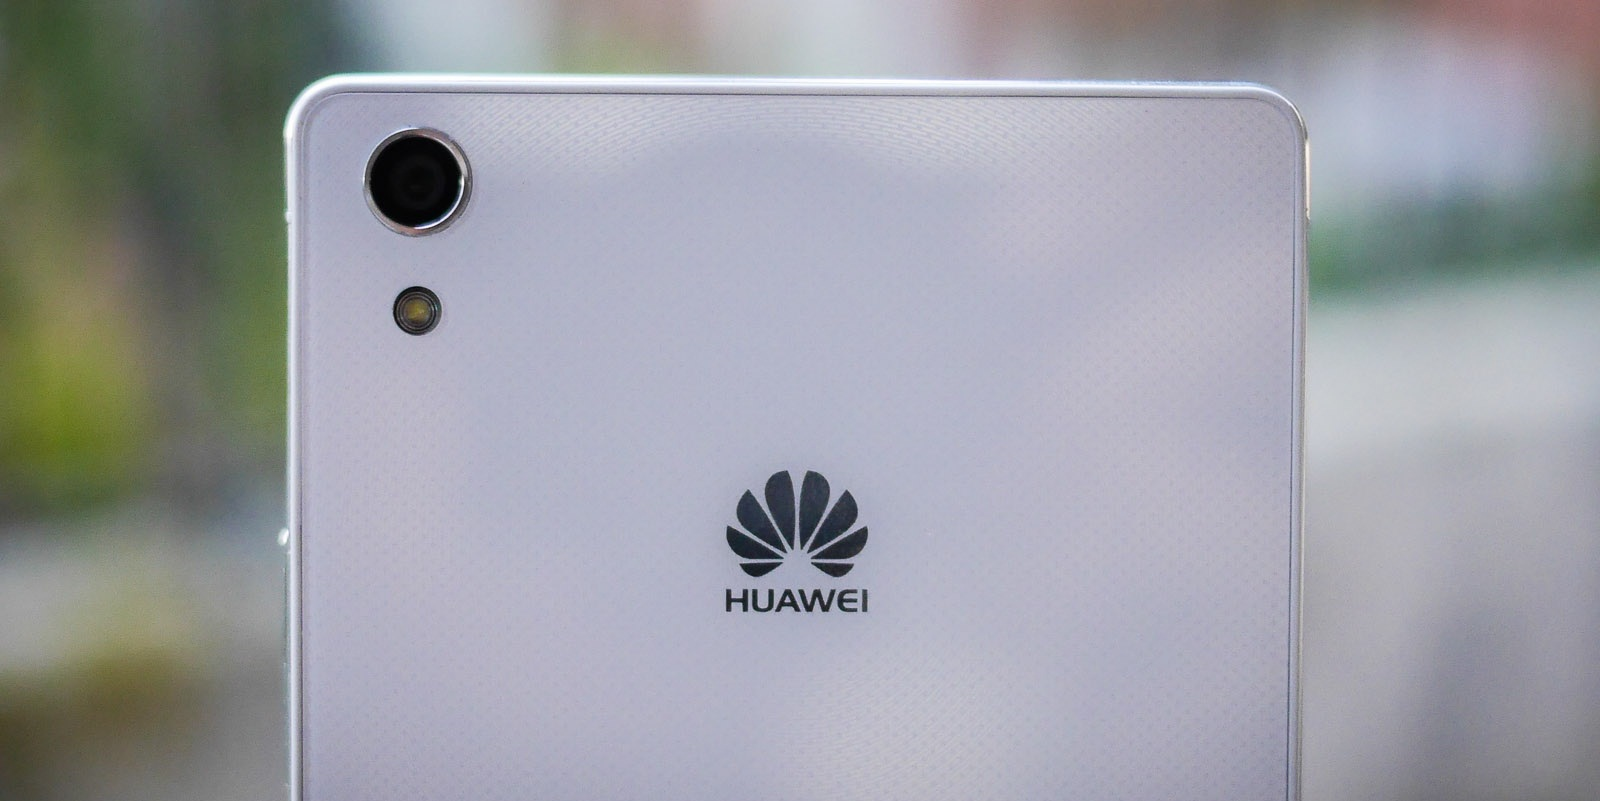 Huawei has unveiled a facial recognition module for smartphones